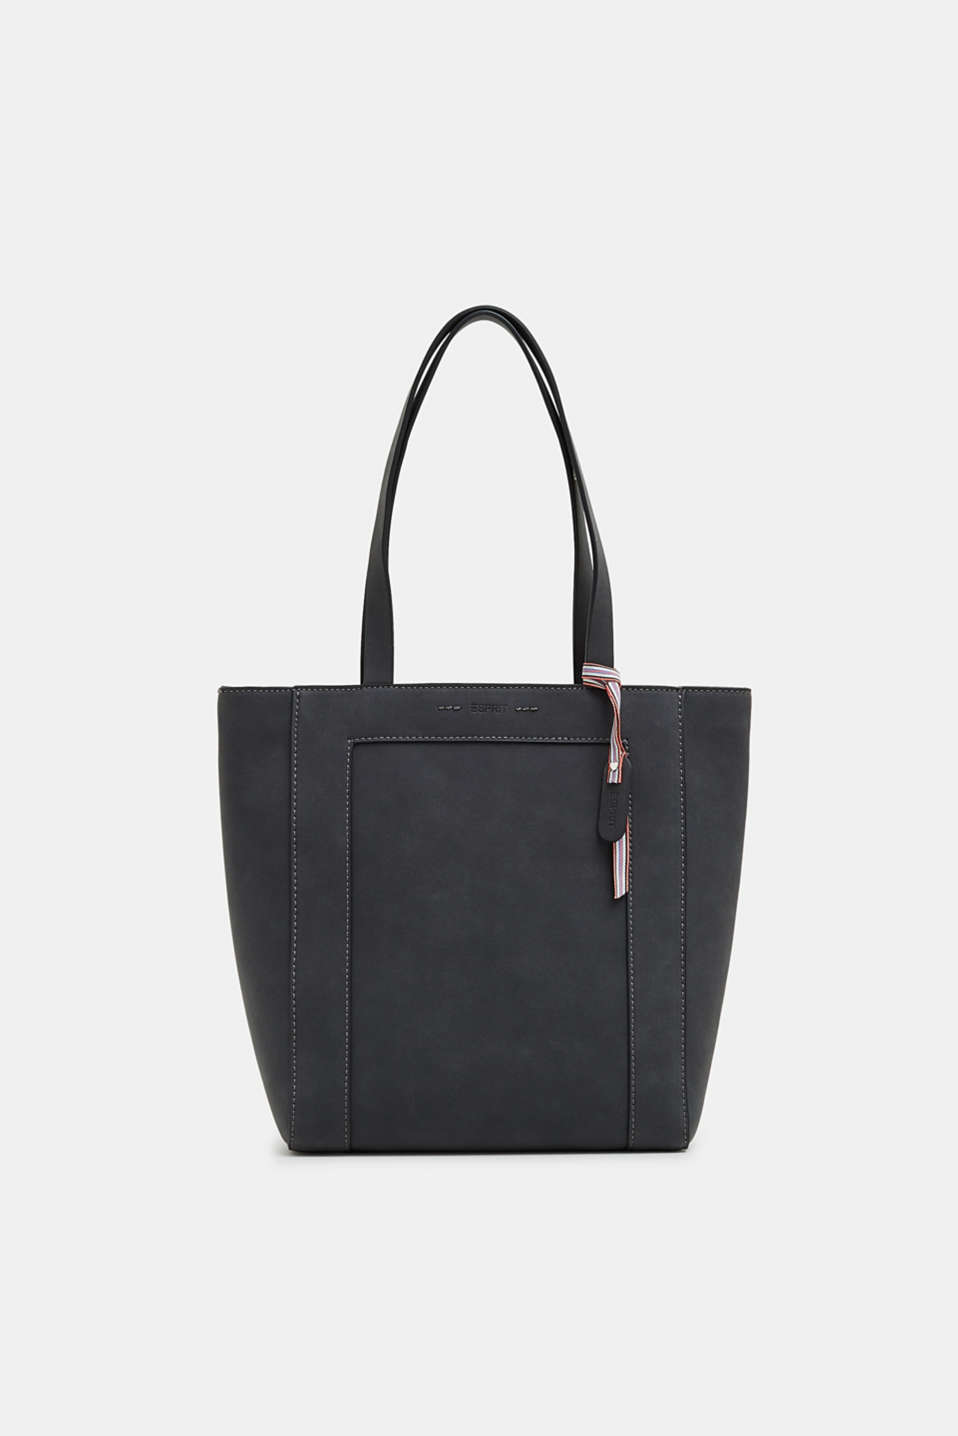 Esprit - Tote back in faux nubuck leather